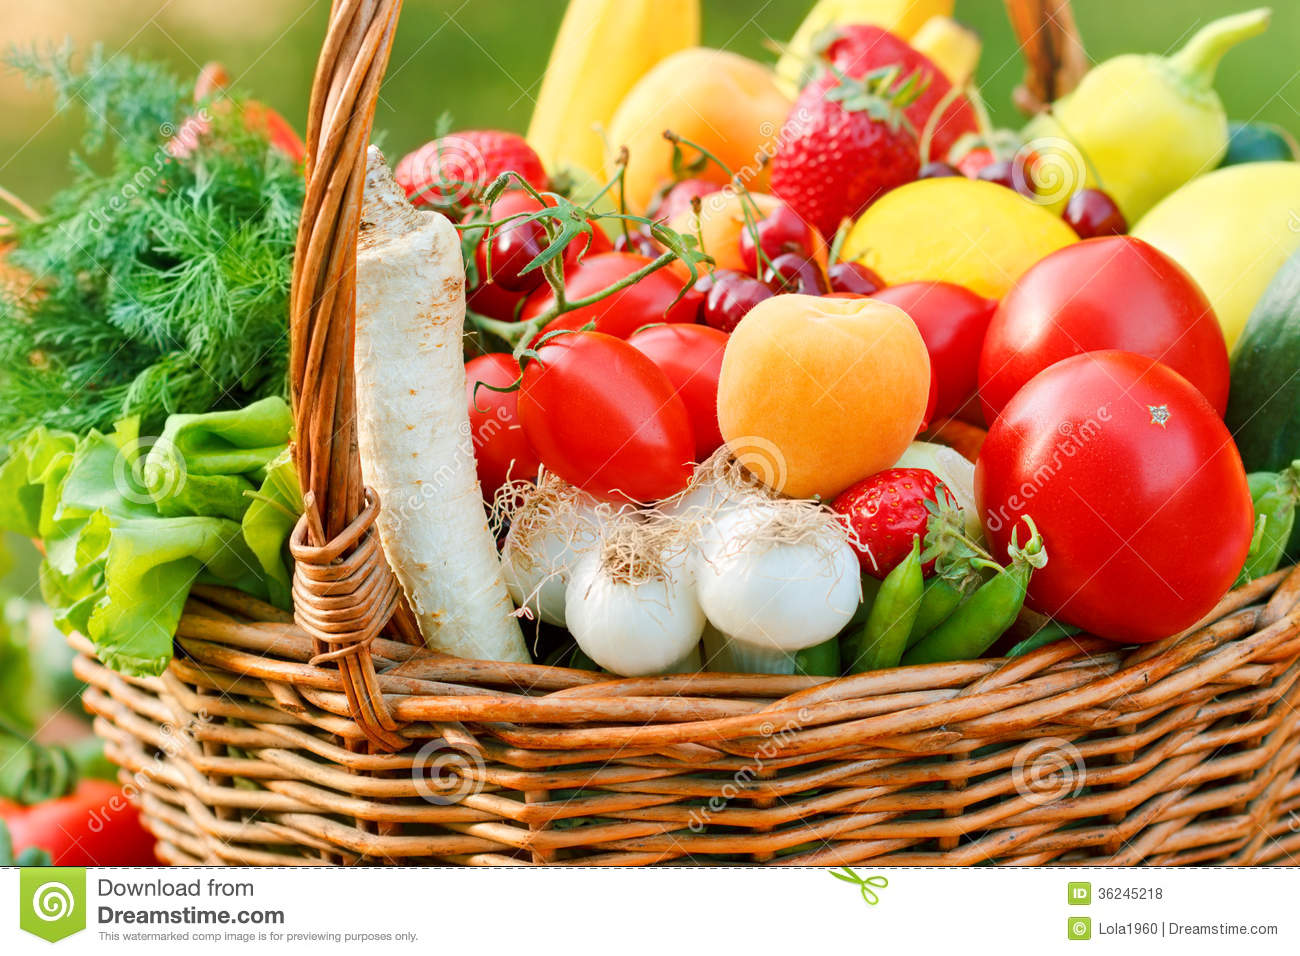 Superbe Fresh Organic Fruits And Vegetables